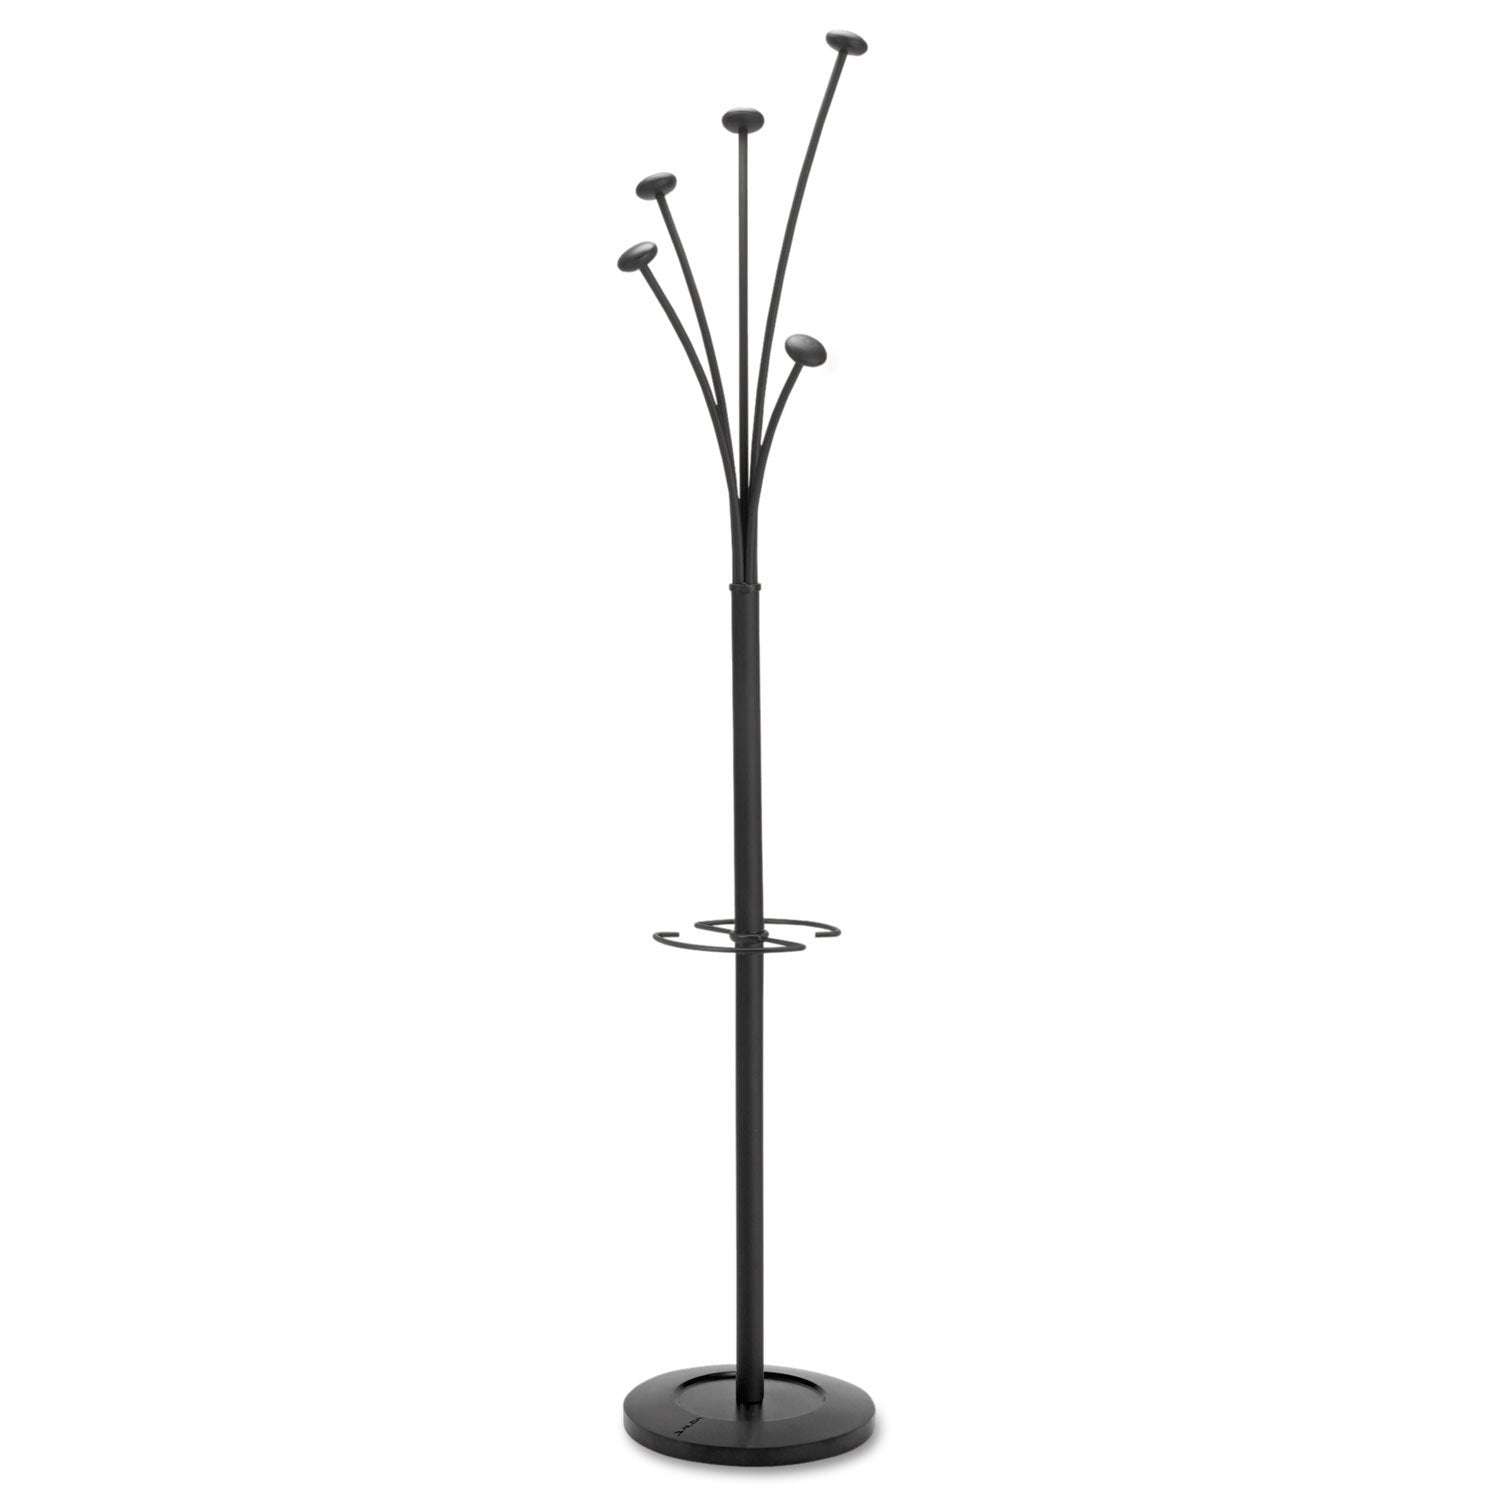 Alba Festival Coat Stand with Umbrella Holder, 5 Knobs, 14w x 14d x 73.67h, Black